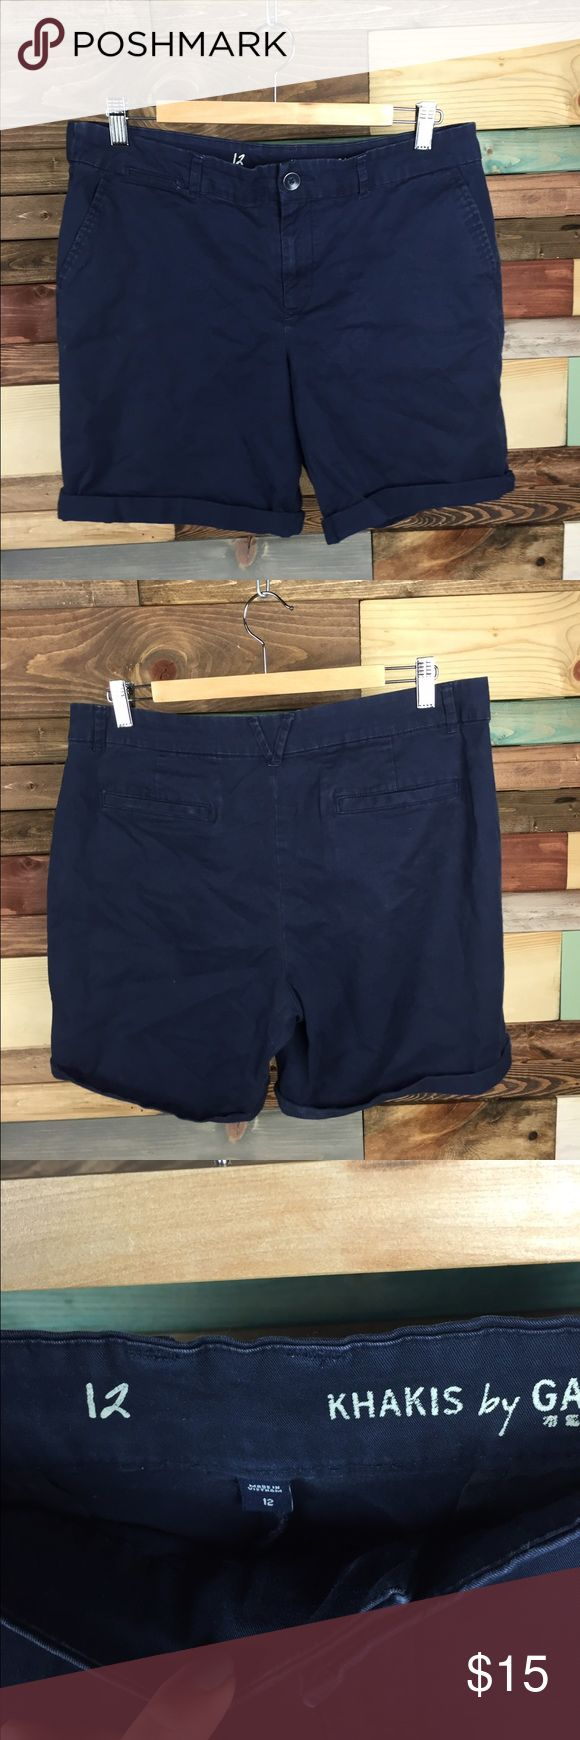 """Gap Navy Bermuda Roll up Shorts - 12 Gap Navy Bermuda Roll up Shorts - 12  Lightly distressed, perfect for vacation! Comfortable &  flattering high rise  Waist (laying flat): 18"""" Inseam: 8"""" Rise: 10""""  #navy #vacation #woodsnap #vacation #summer #shorts #longshorts #bermudashorts #rollupshorts #highriseshorts #highwaistedshorts #longshorts #modest #comfortable #casualchic GAP Shorts"""